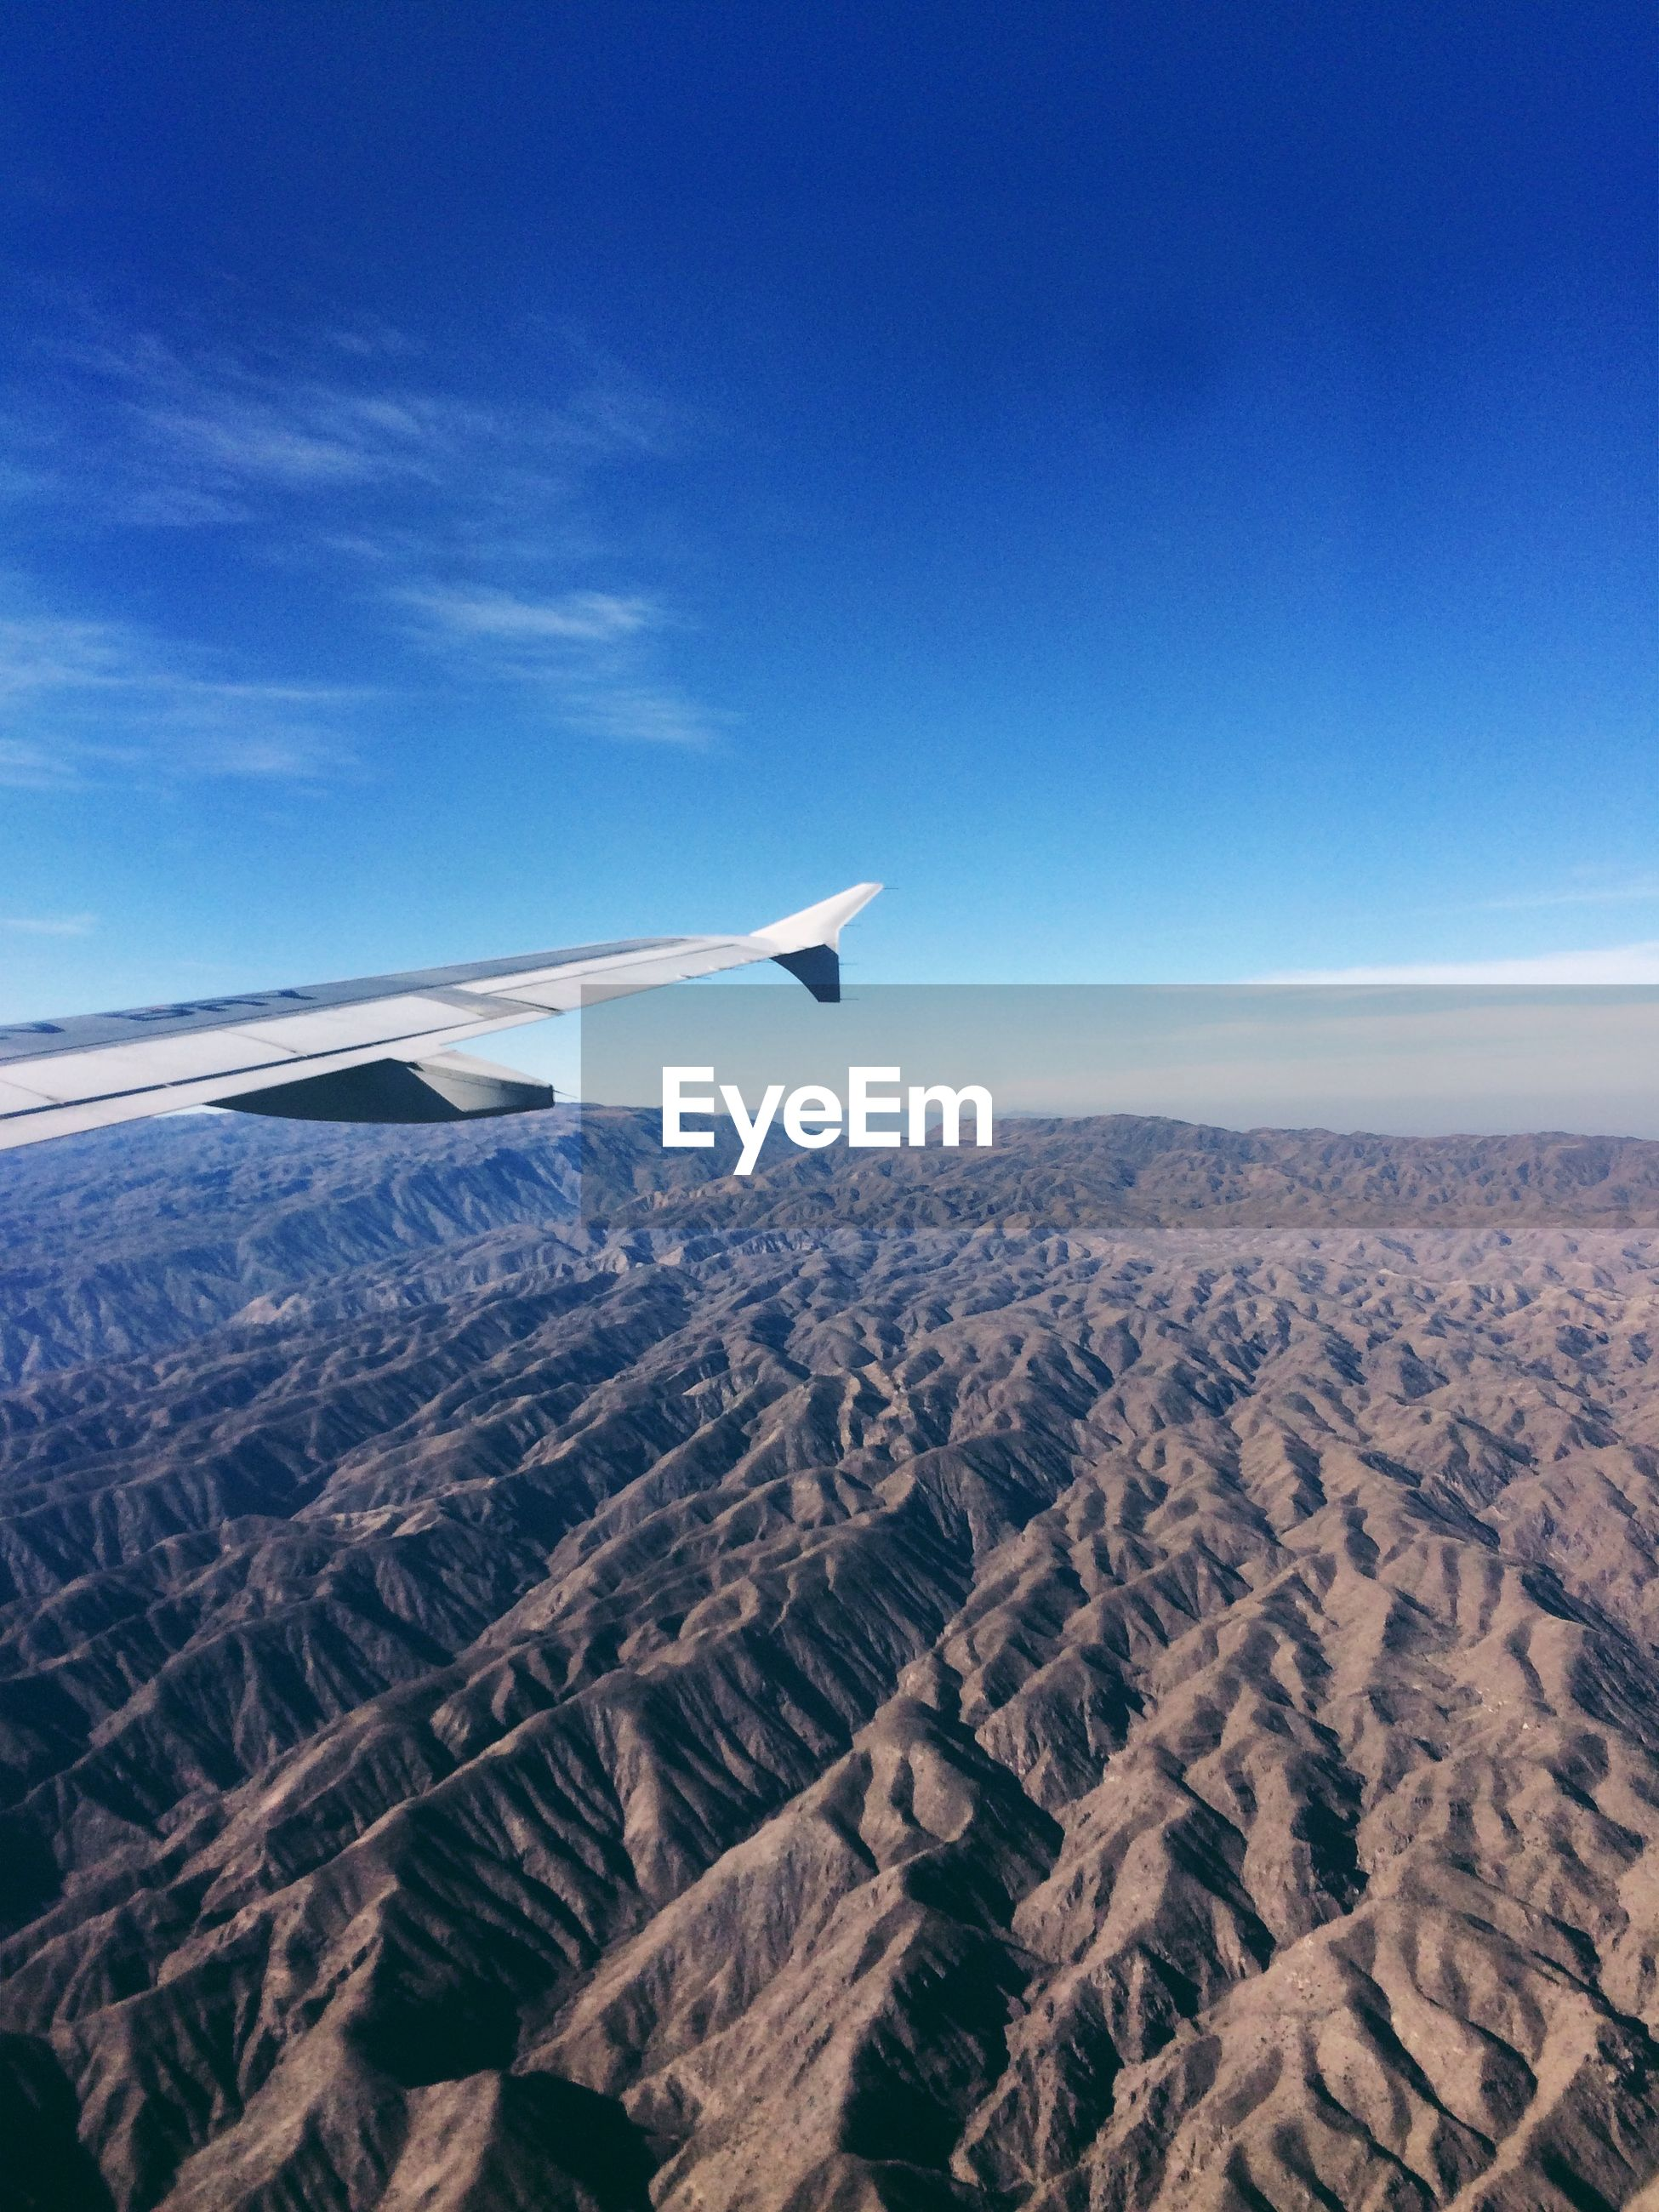 Cropped image of airplane flying above rocky mountains